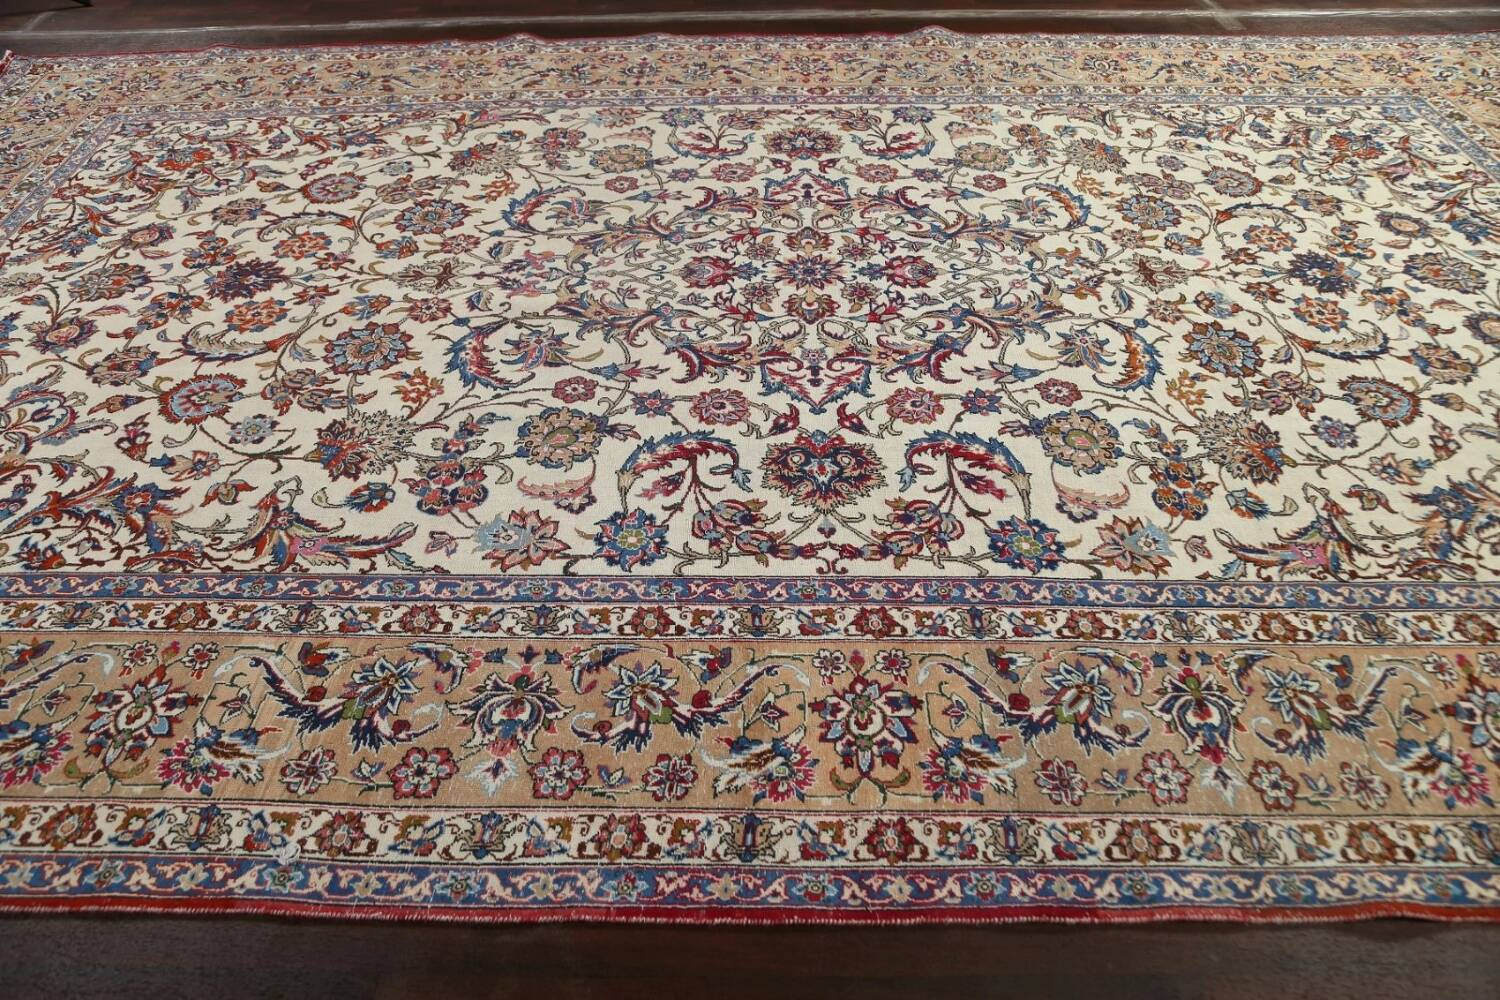 Antique Wool Oversized Isfahan Persian Rug 10x17 image 14